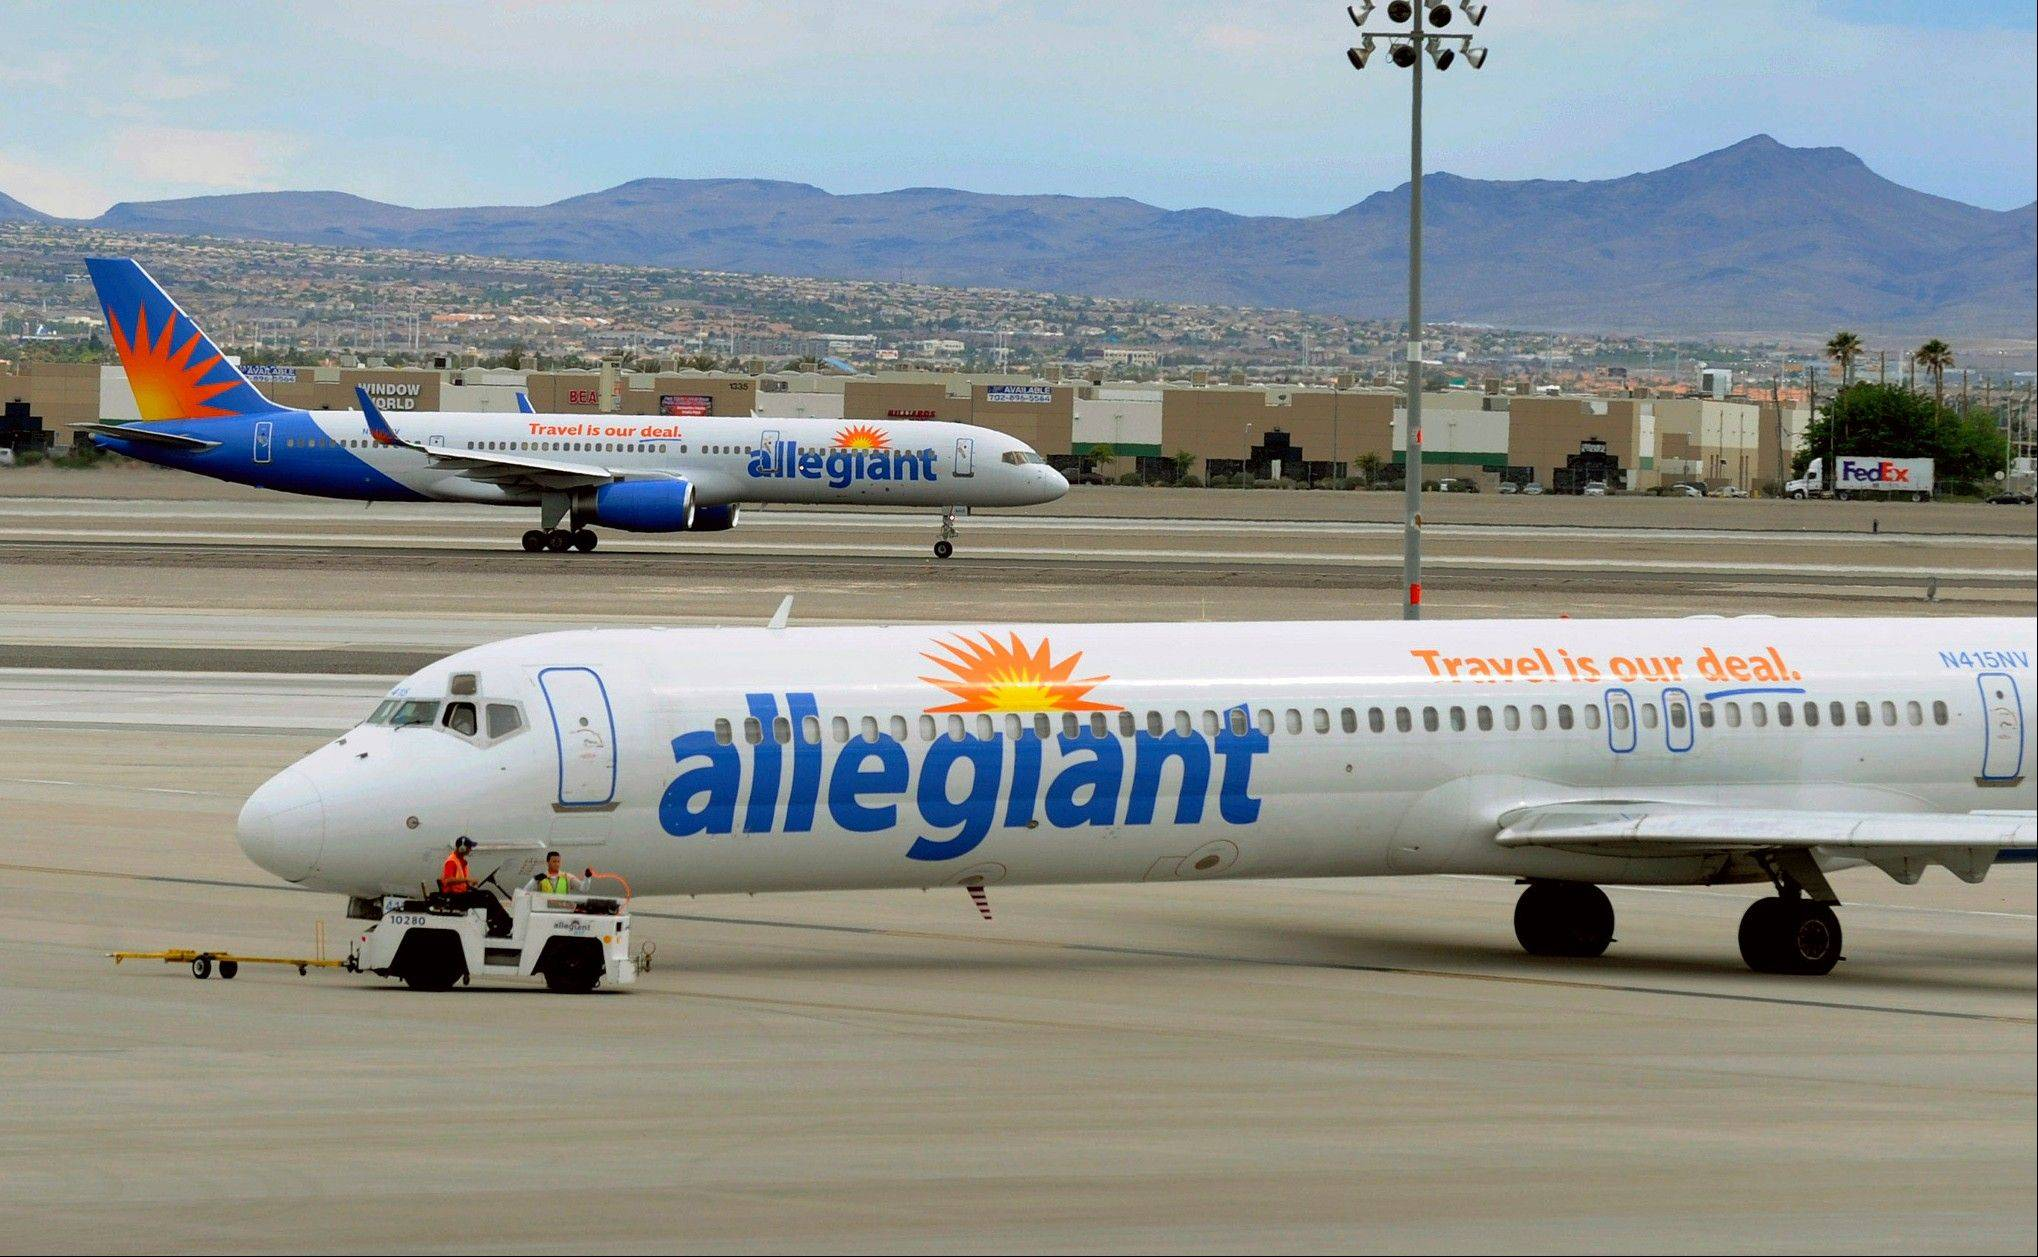 Two Allegiant Air jets taxi at McCarran International Airport in Las Vegas.